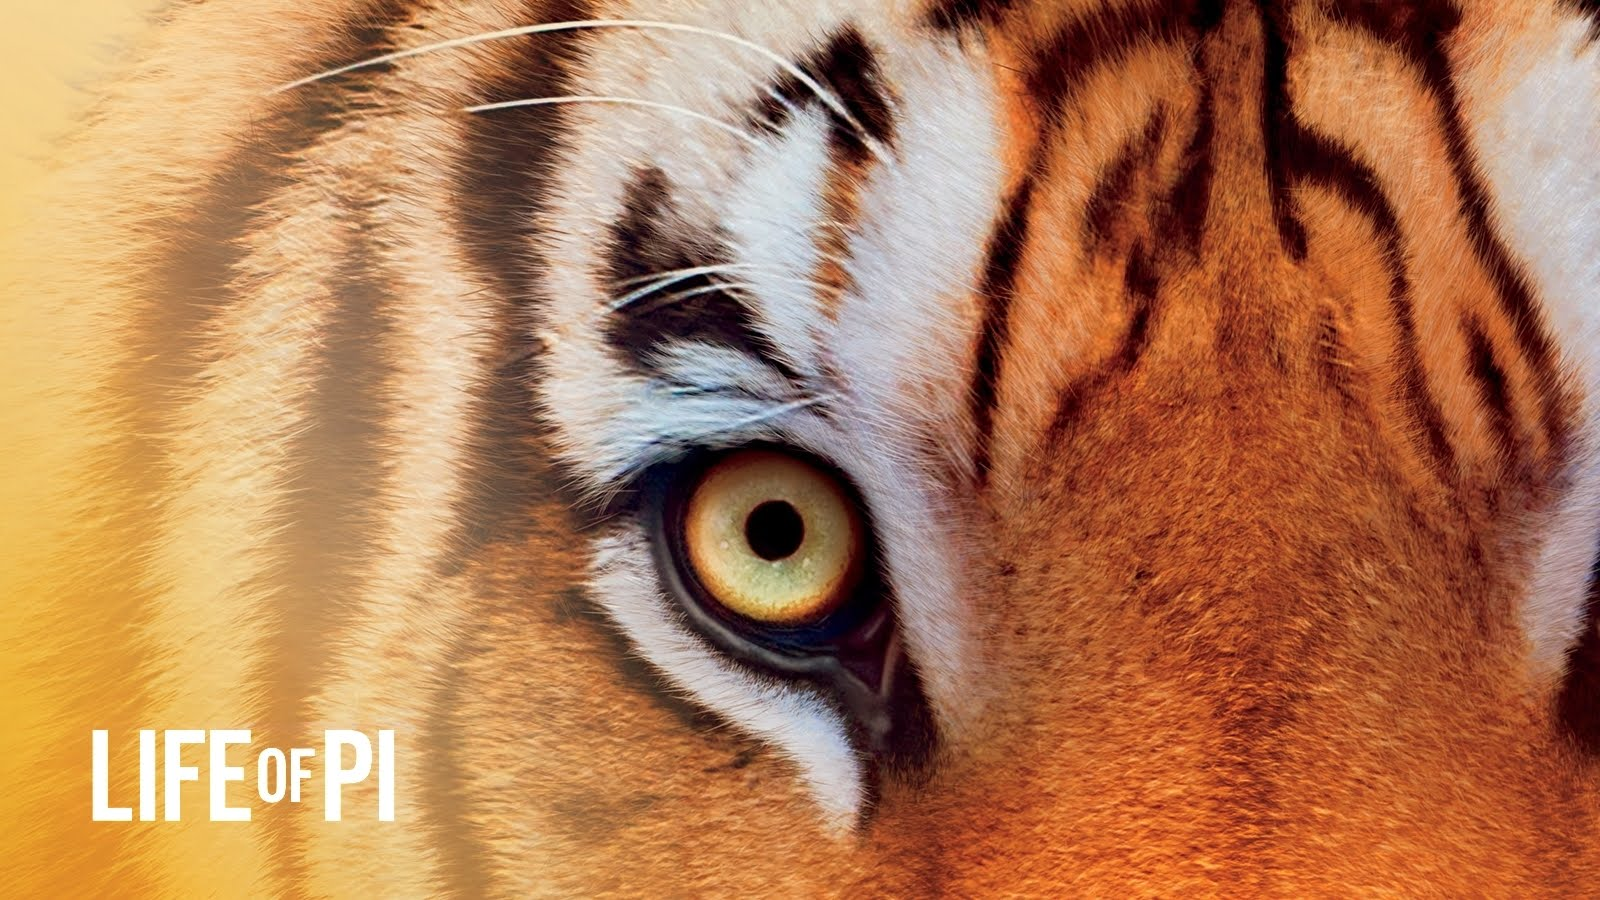 http://1.bp.blogspot.com/-qgWZ_C0mahs/UK96nYxmqoI/AAAAAAAATNY/qiU7I-hXpog/s1600/Life_Of_Pi_Wallpaper_tiger_eye.jpg